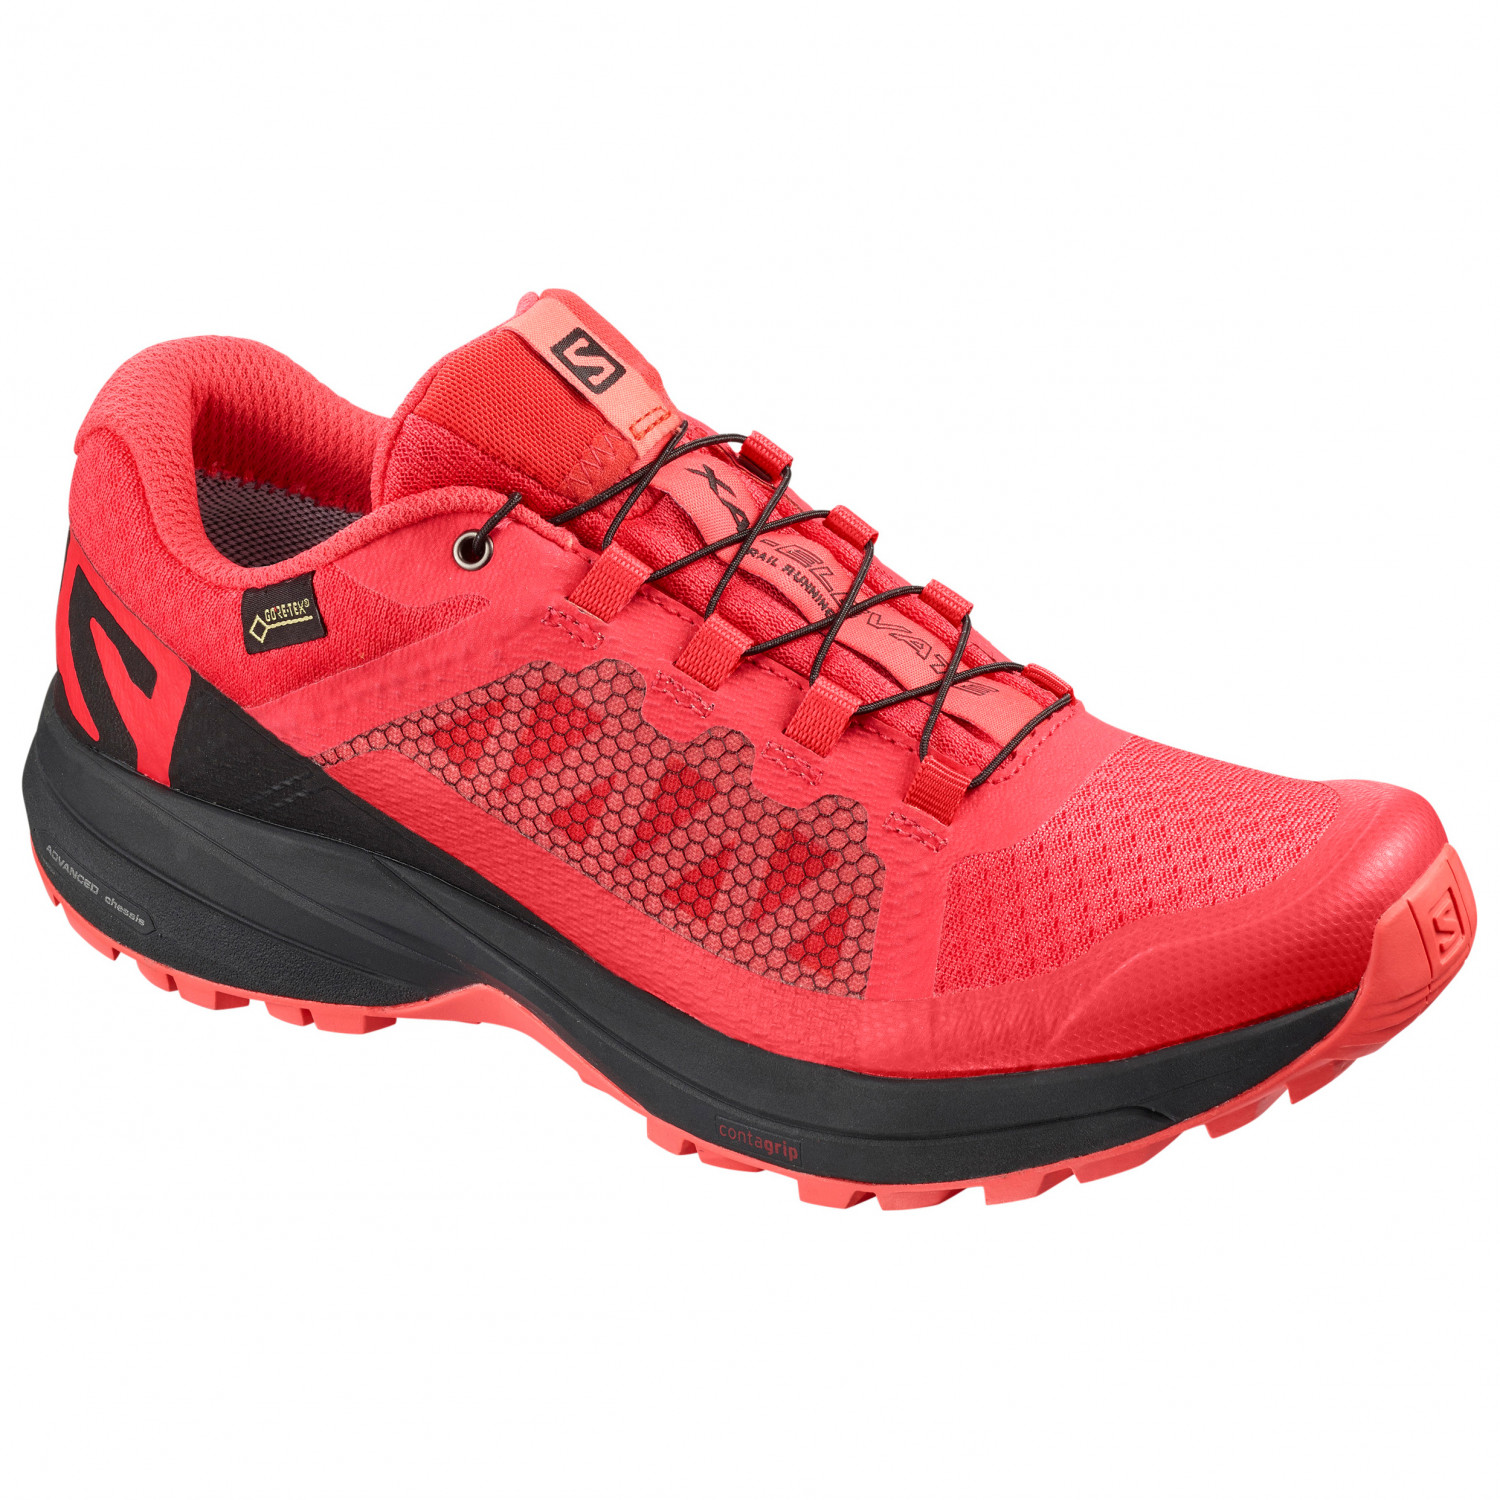 Salomon Women's XA Elevate GTX Trailrunningschoenen Hibiscus Black Dubarry | 5,5 (UK)